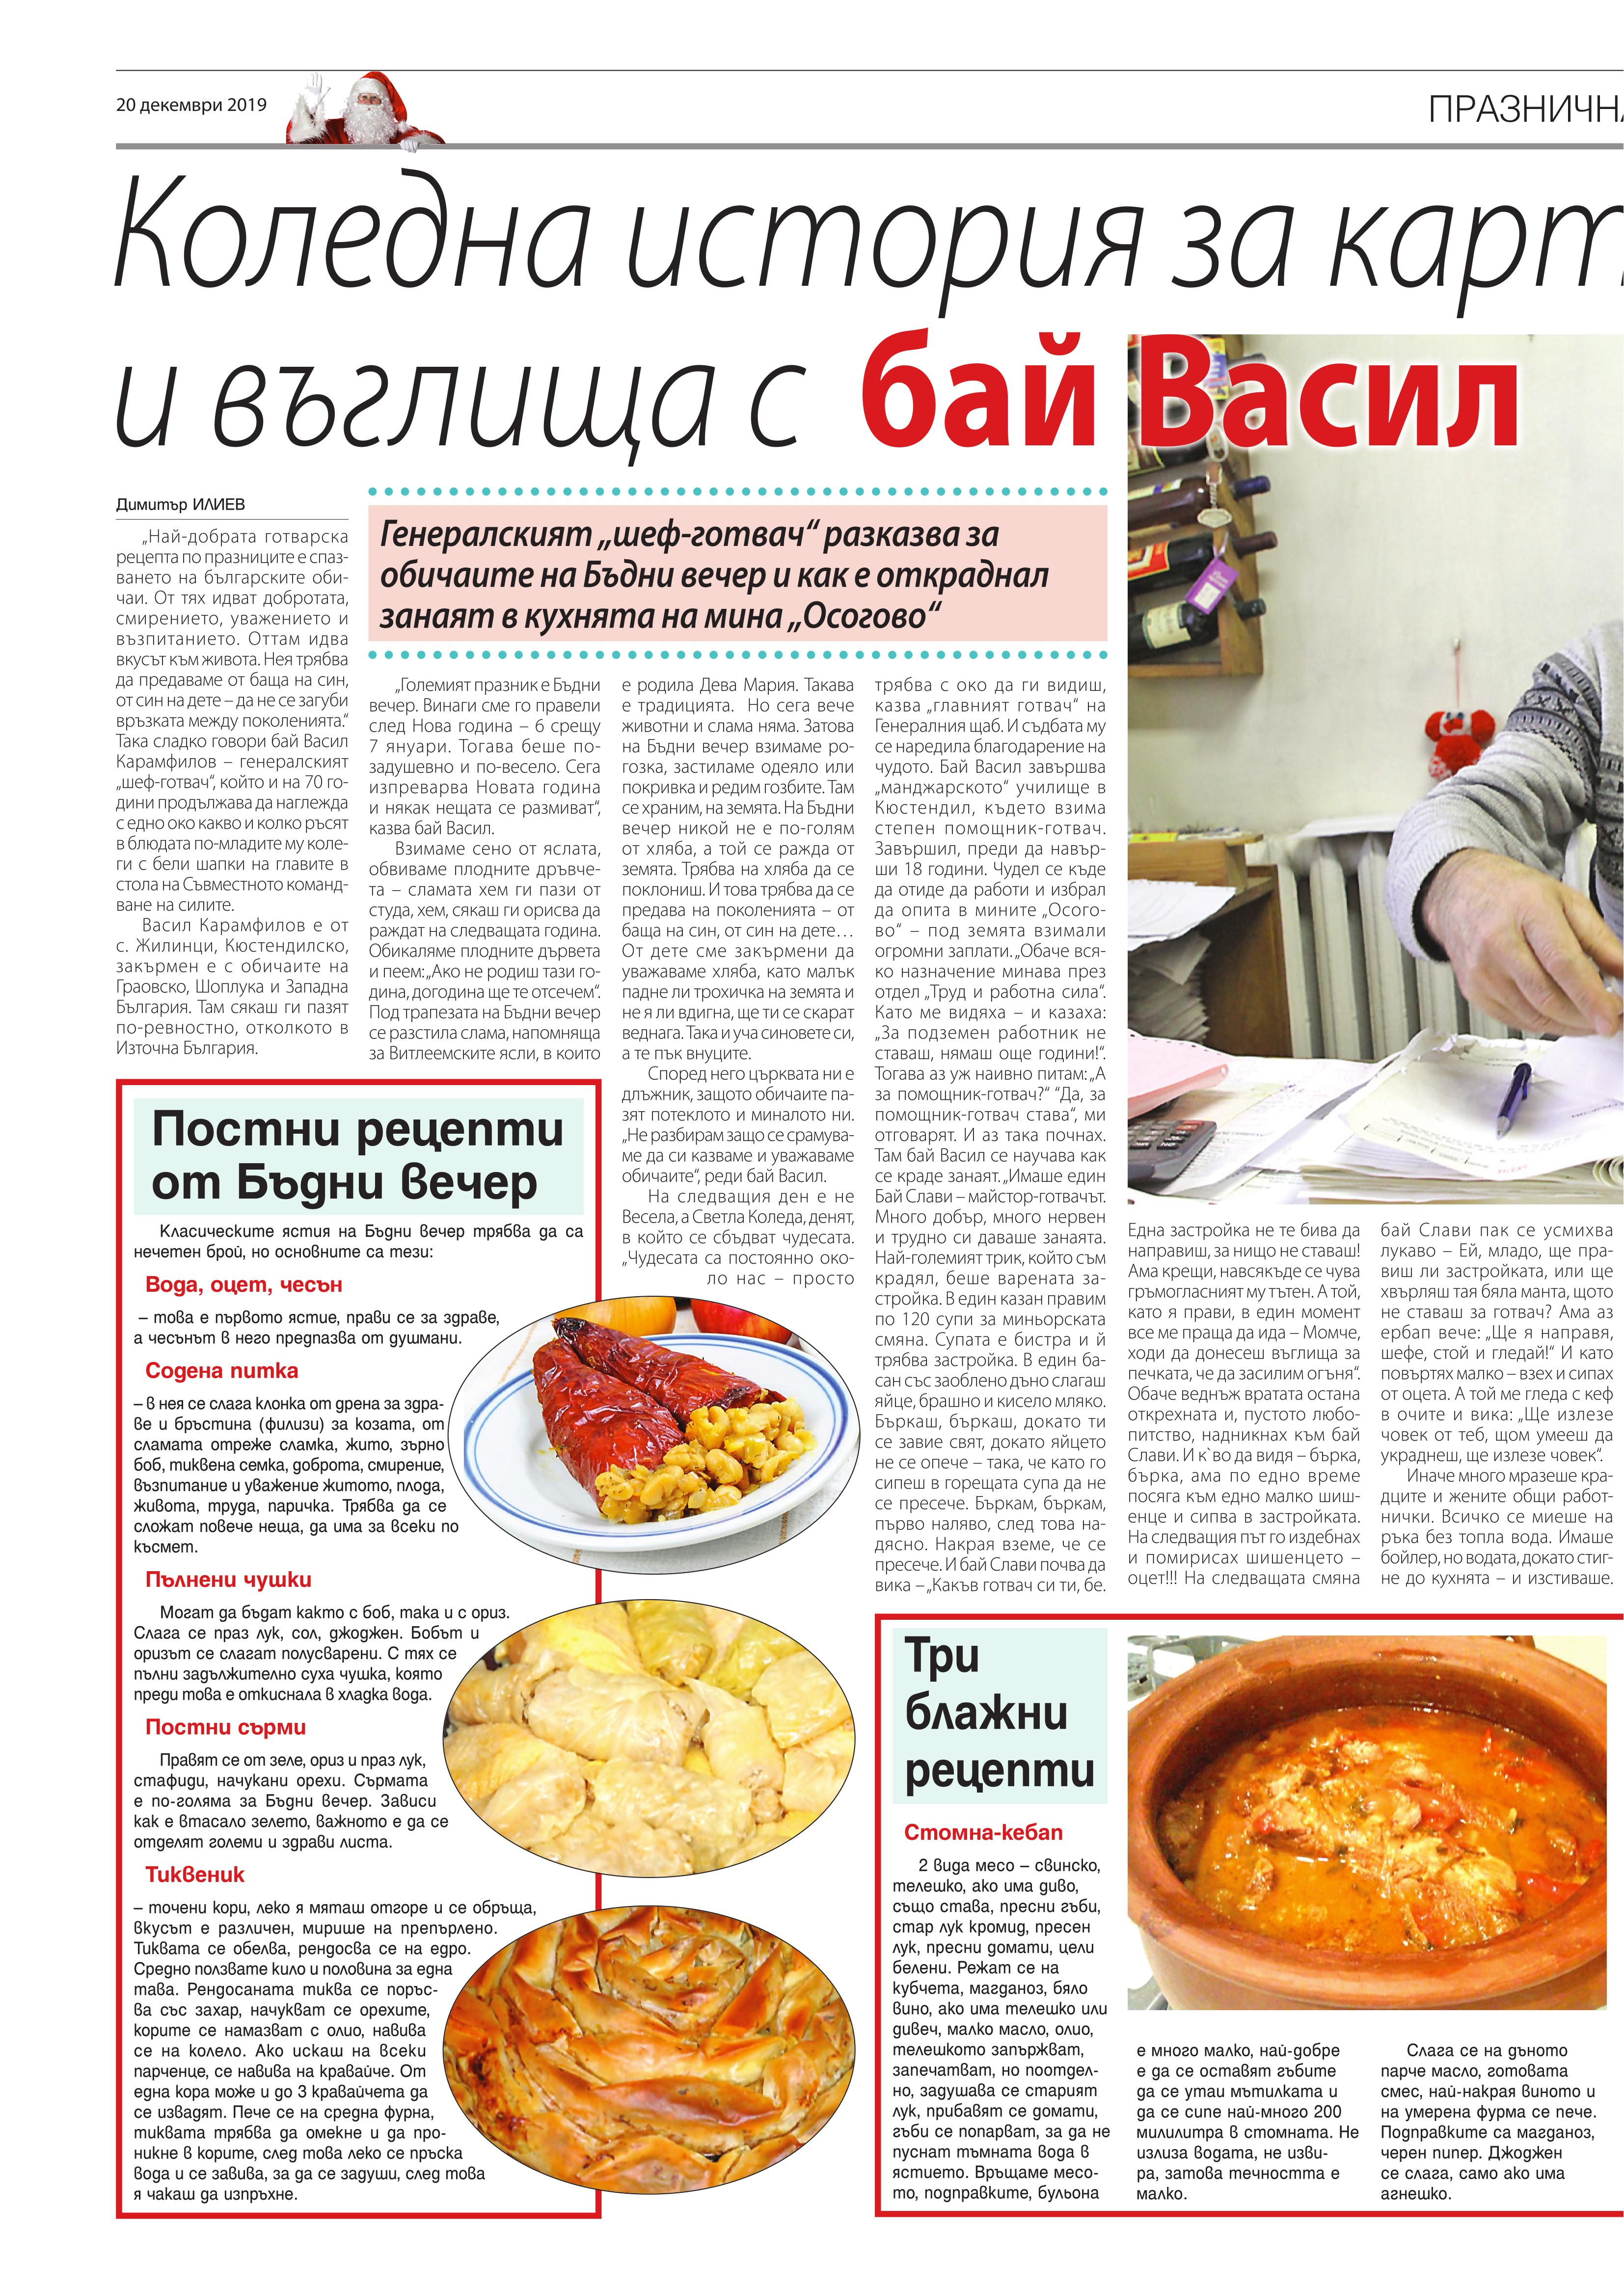 https://armymedia.bg/wp-content/uploads/2015/06/20.page1_-120.jpg